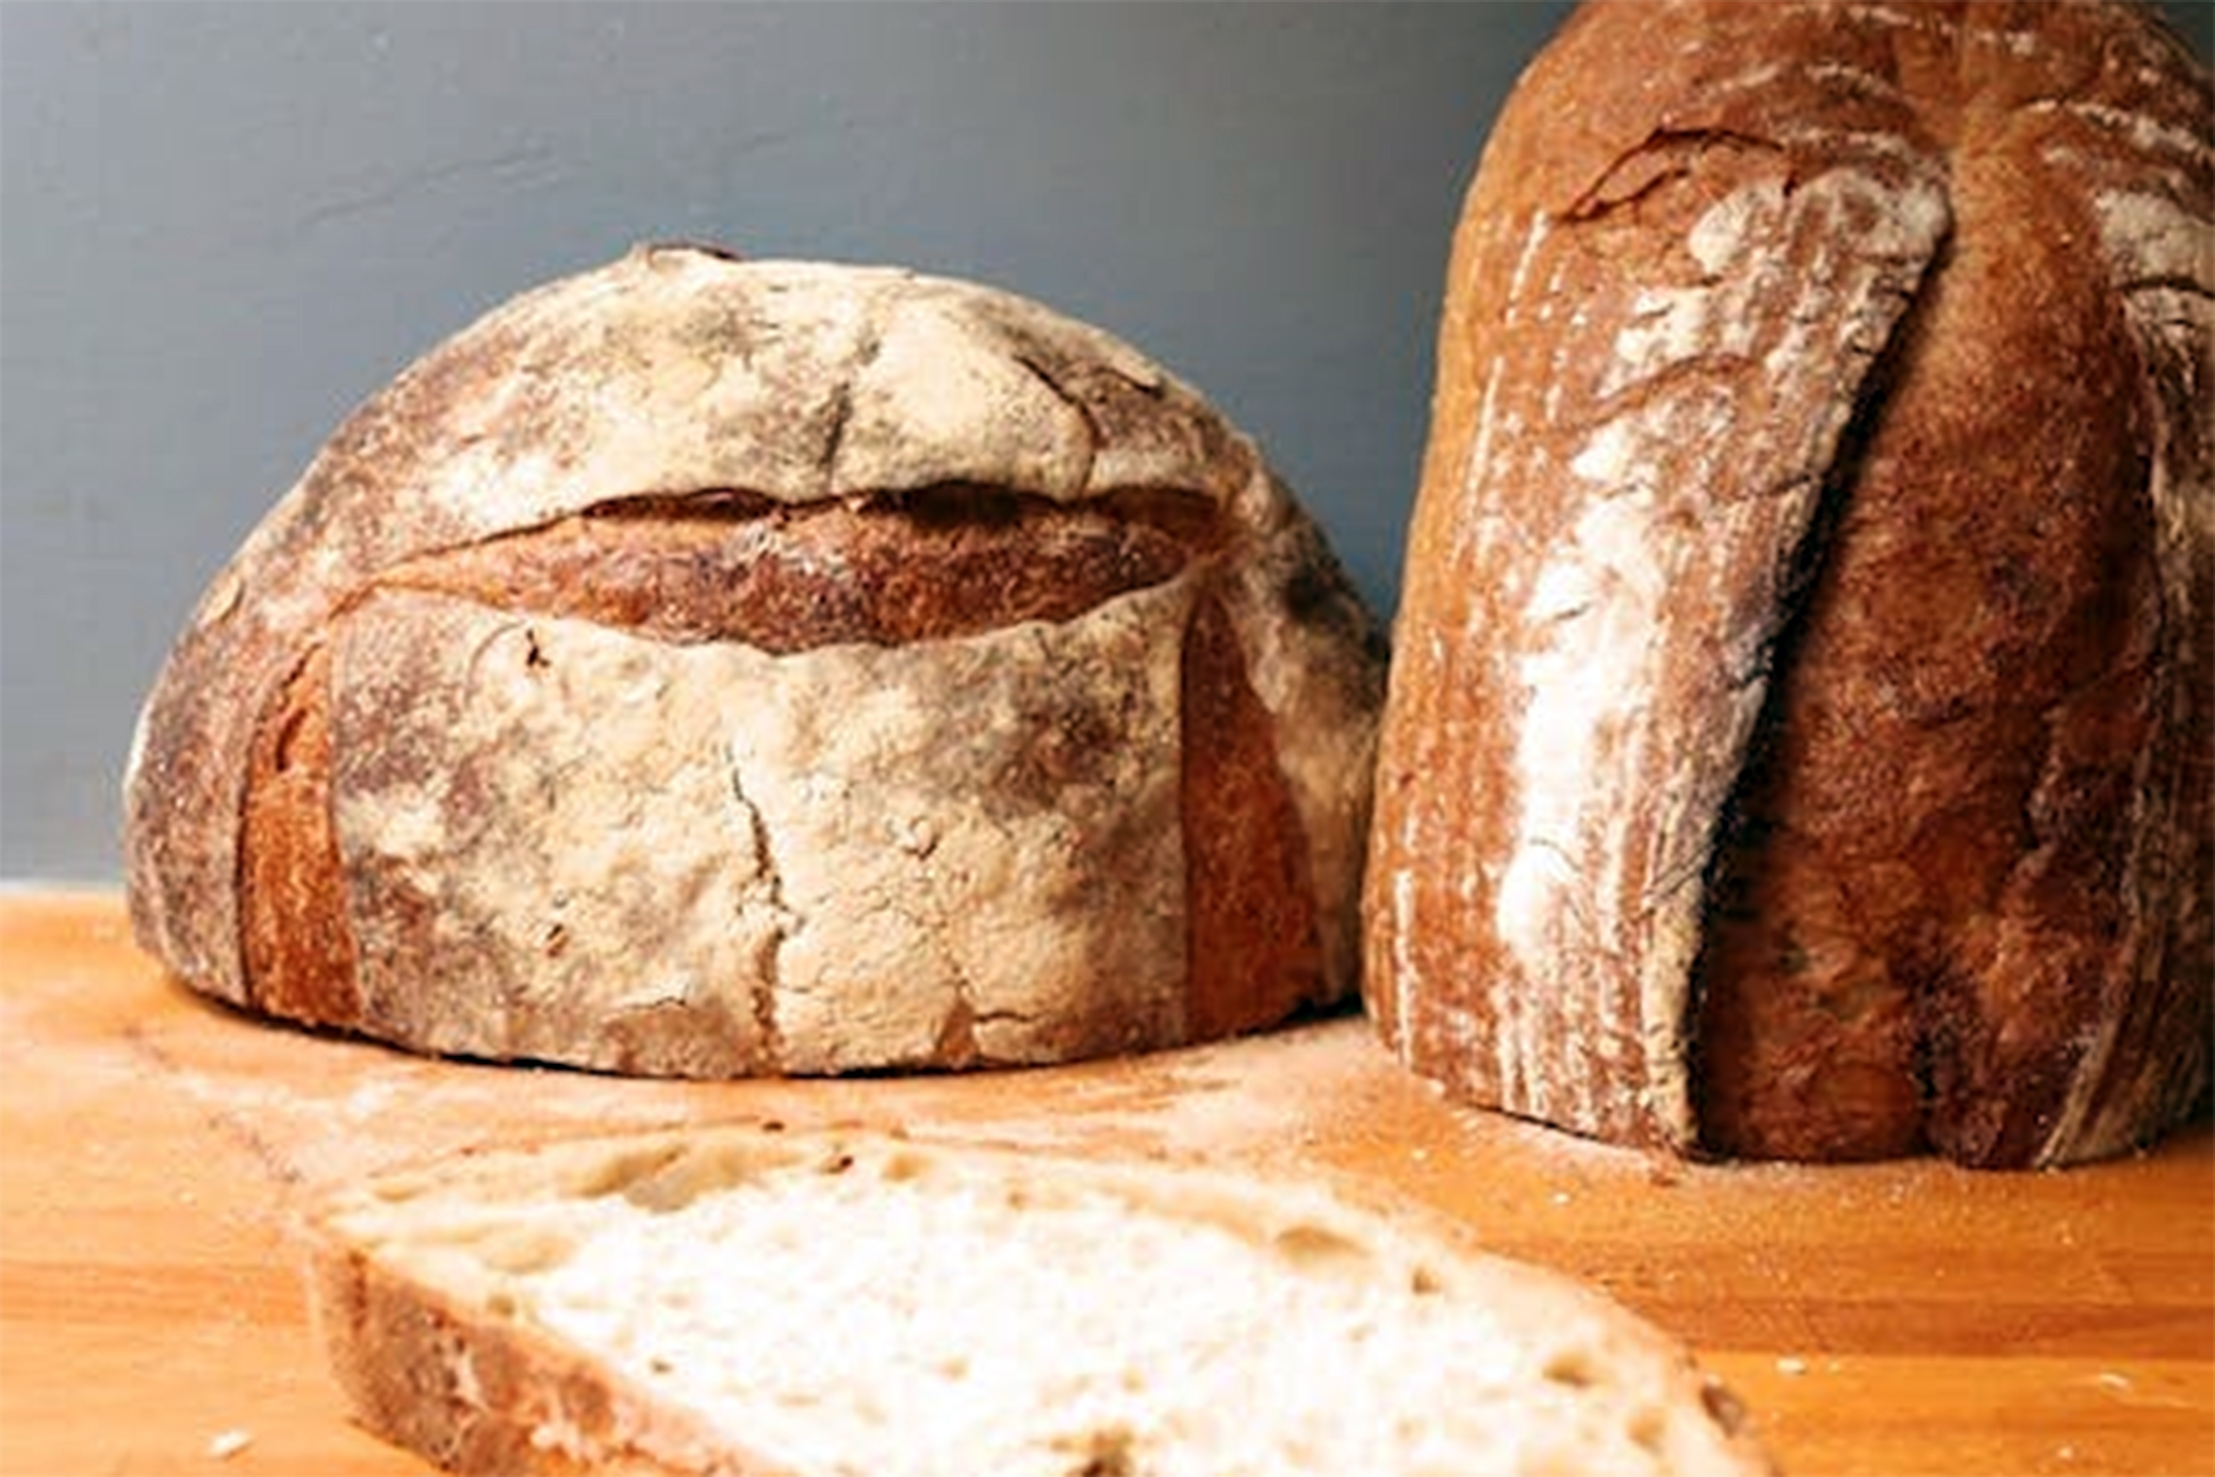 THE PROPER WAY TO STORE BREAD:Slice off just the portion you plan to eat, and invert the exposed end on a table or cutting board. -